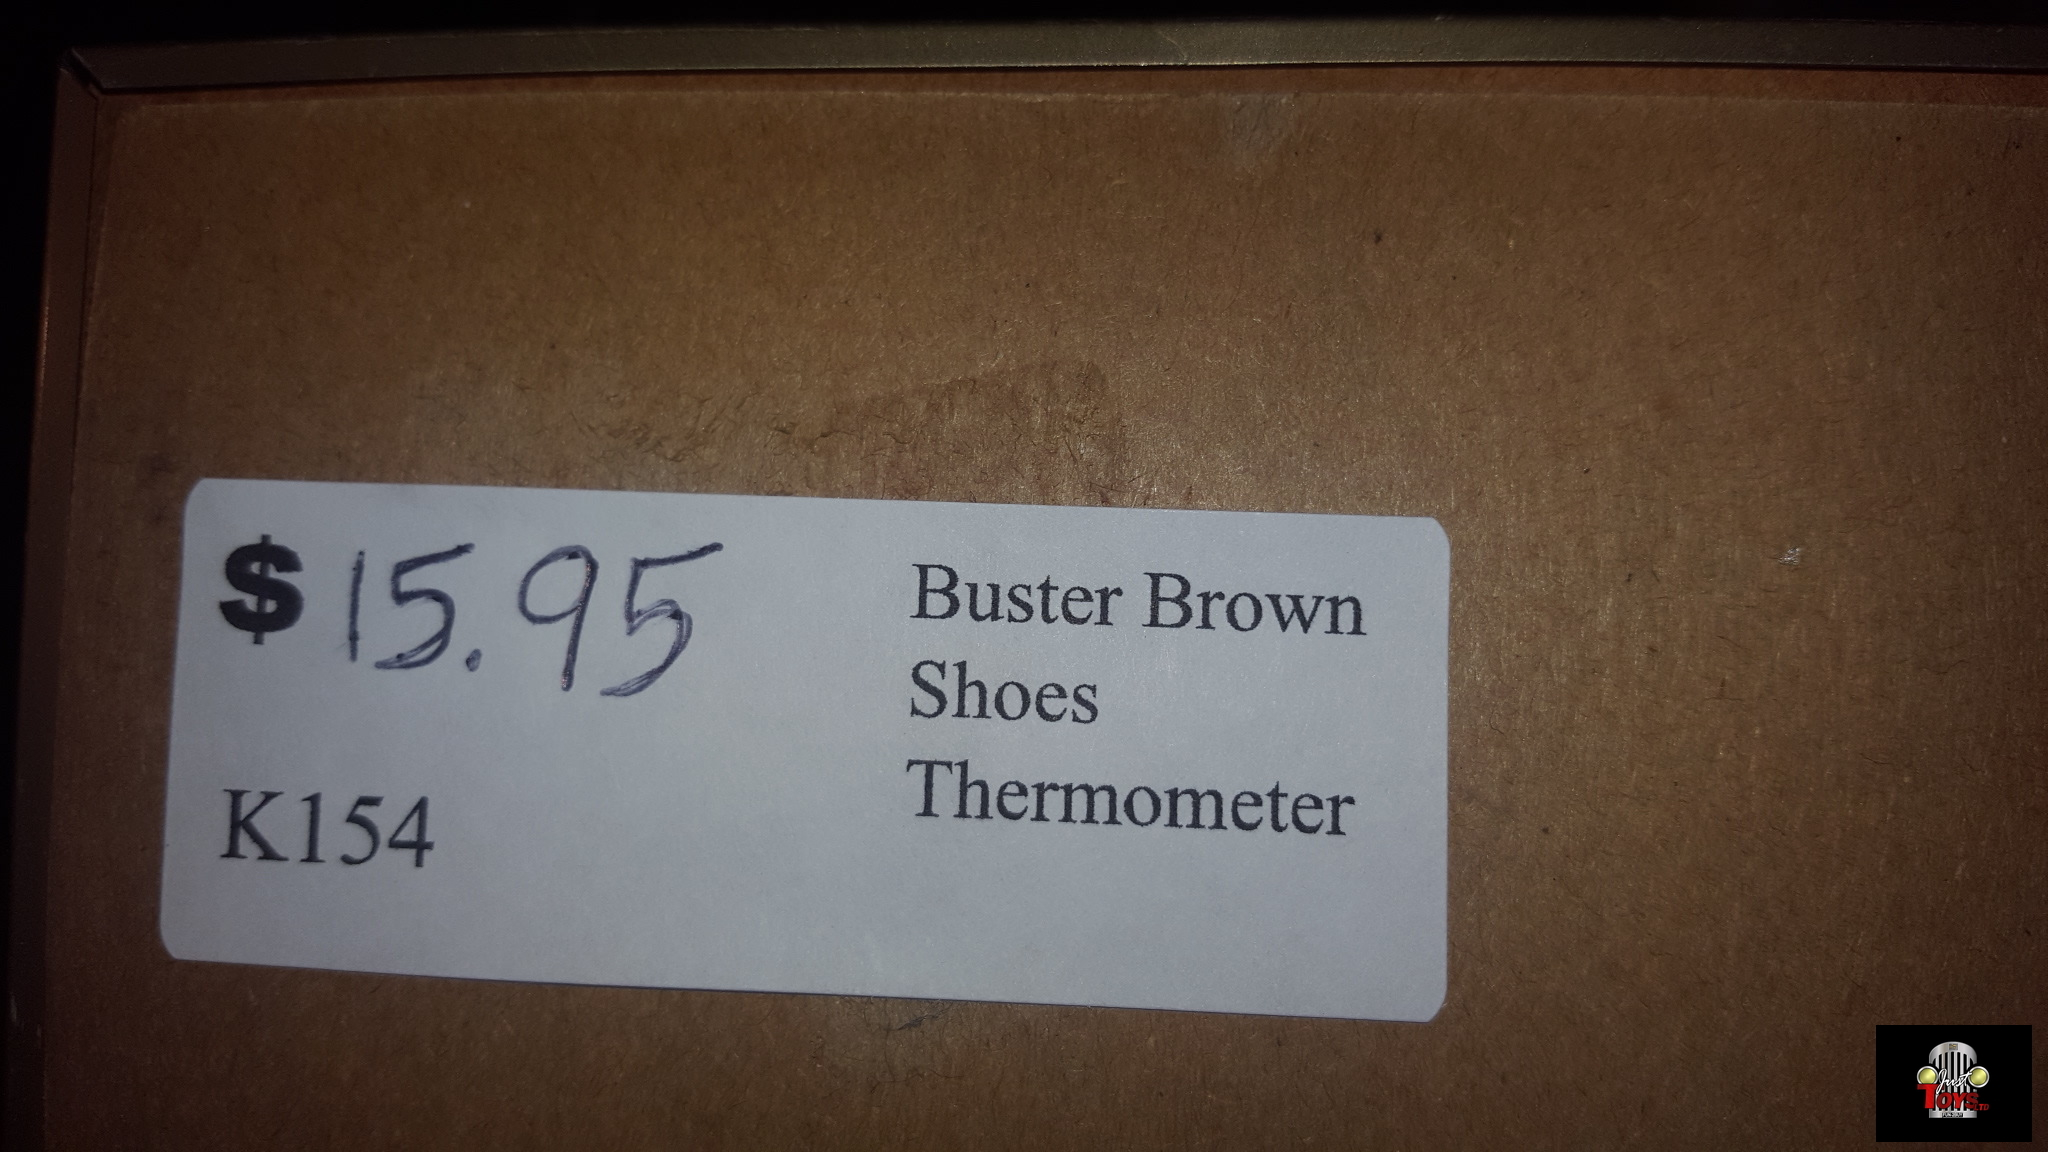 Buster Brown Shoes Thermometer